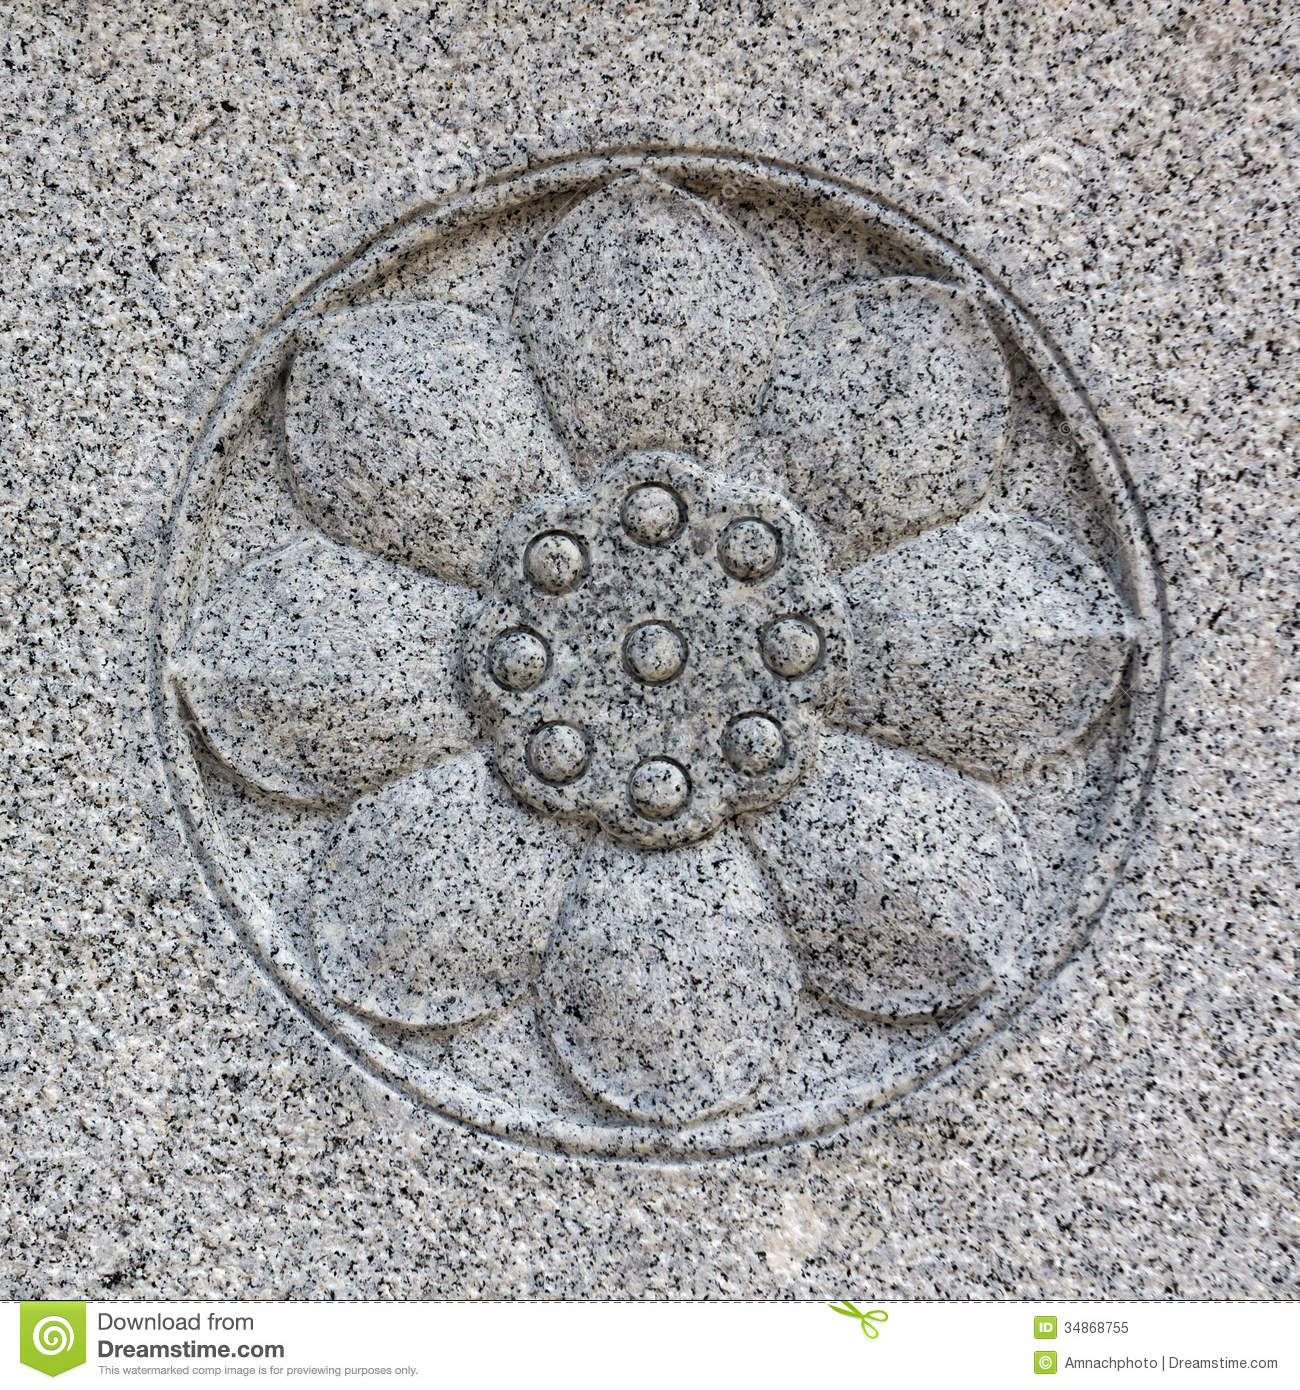 Lotus flower stone carving stock photo megapixl